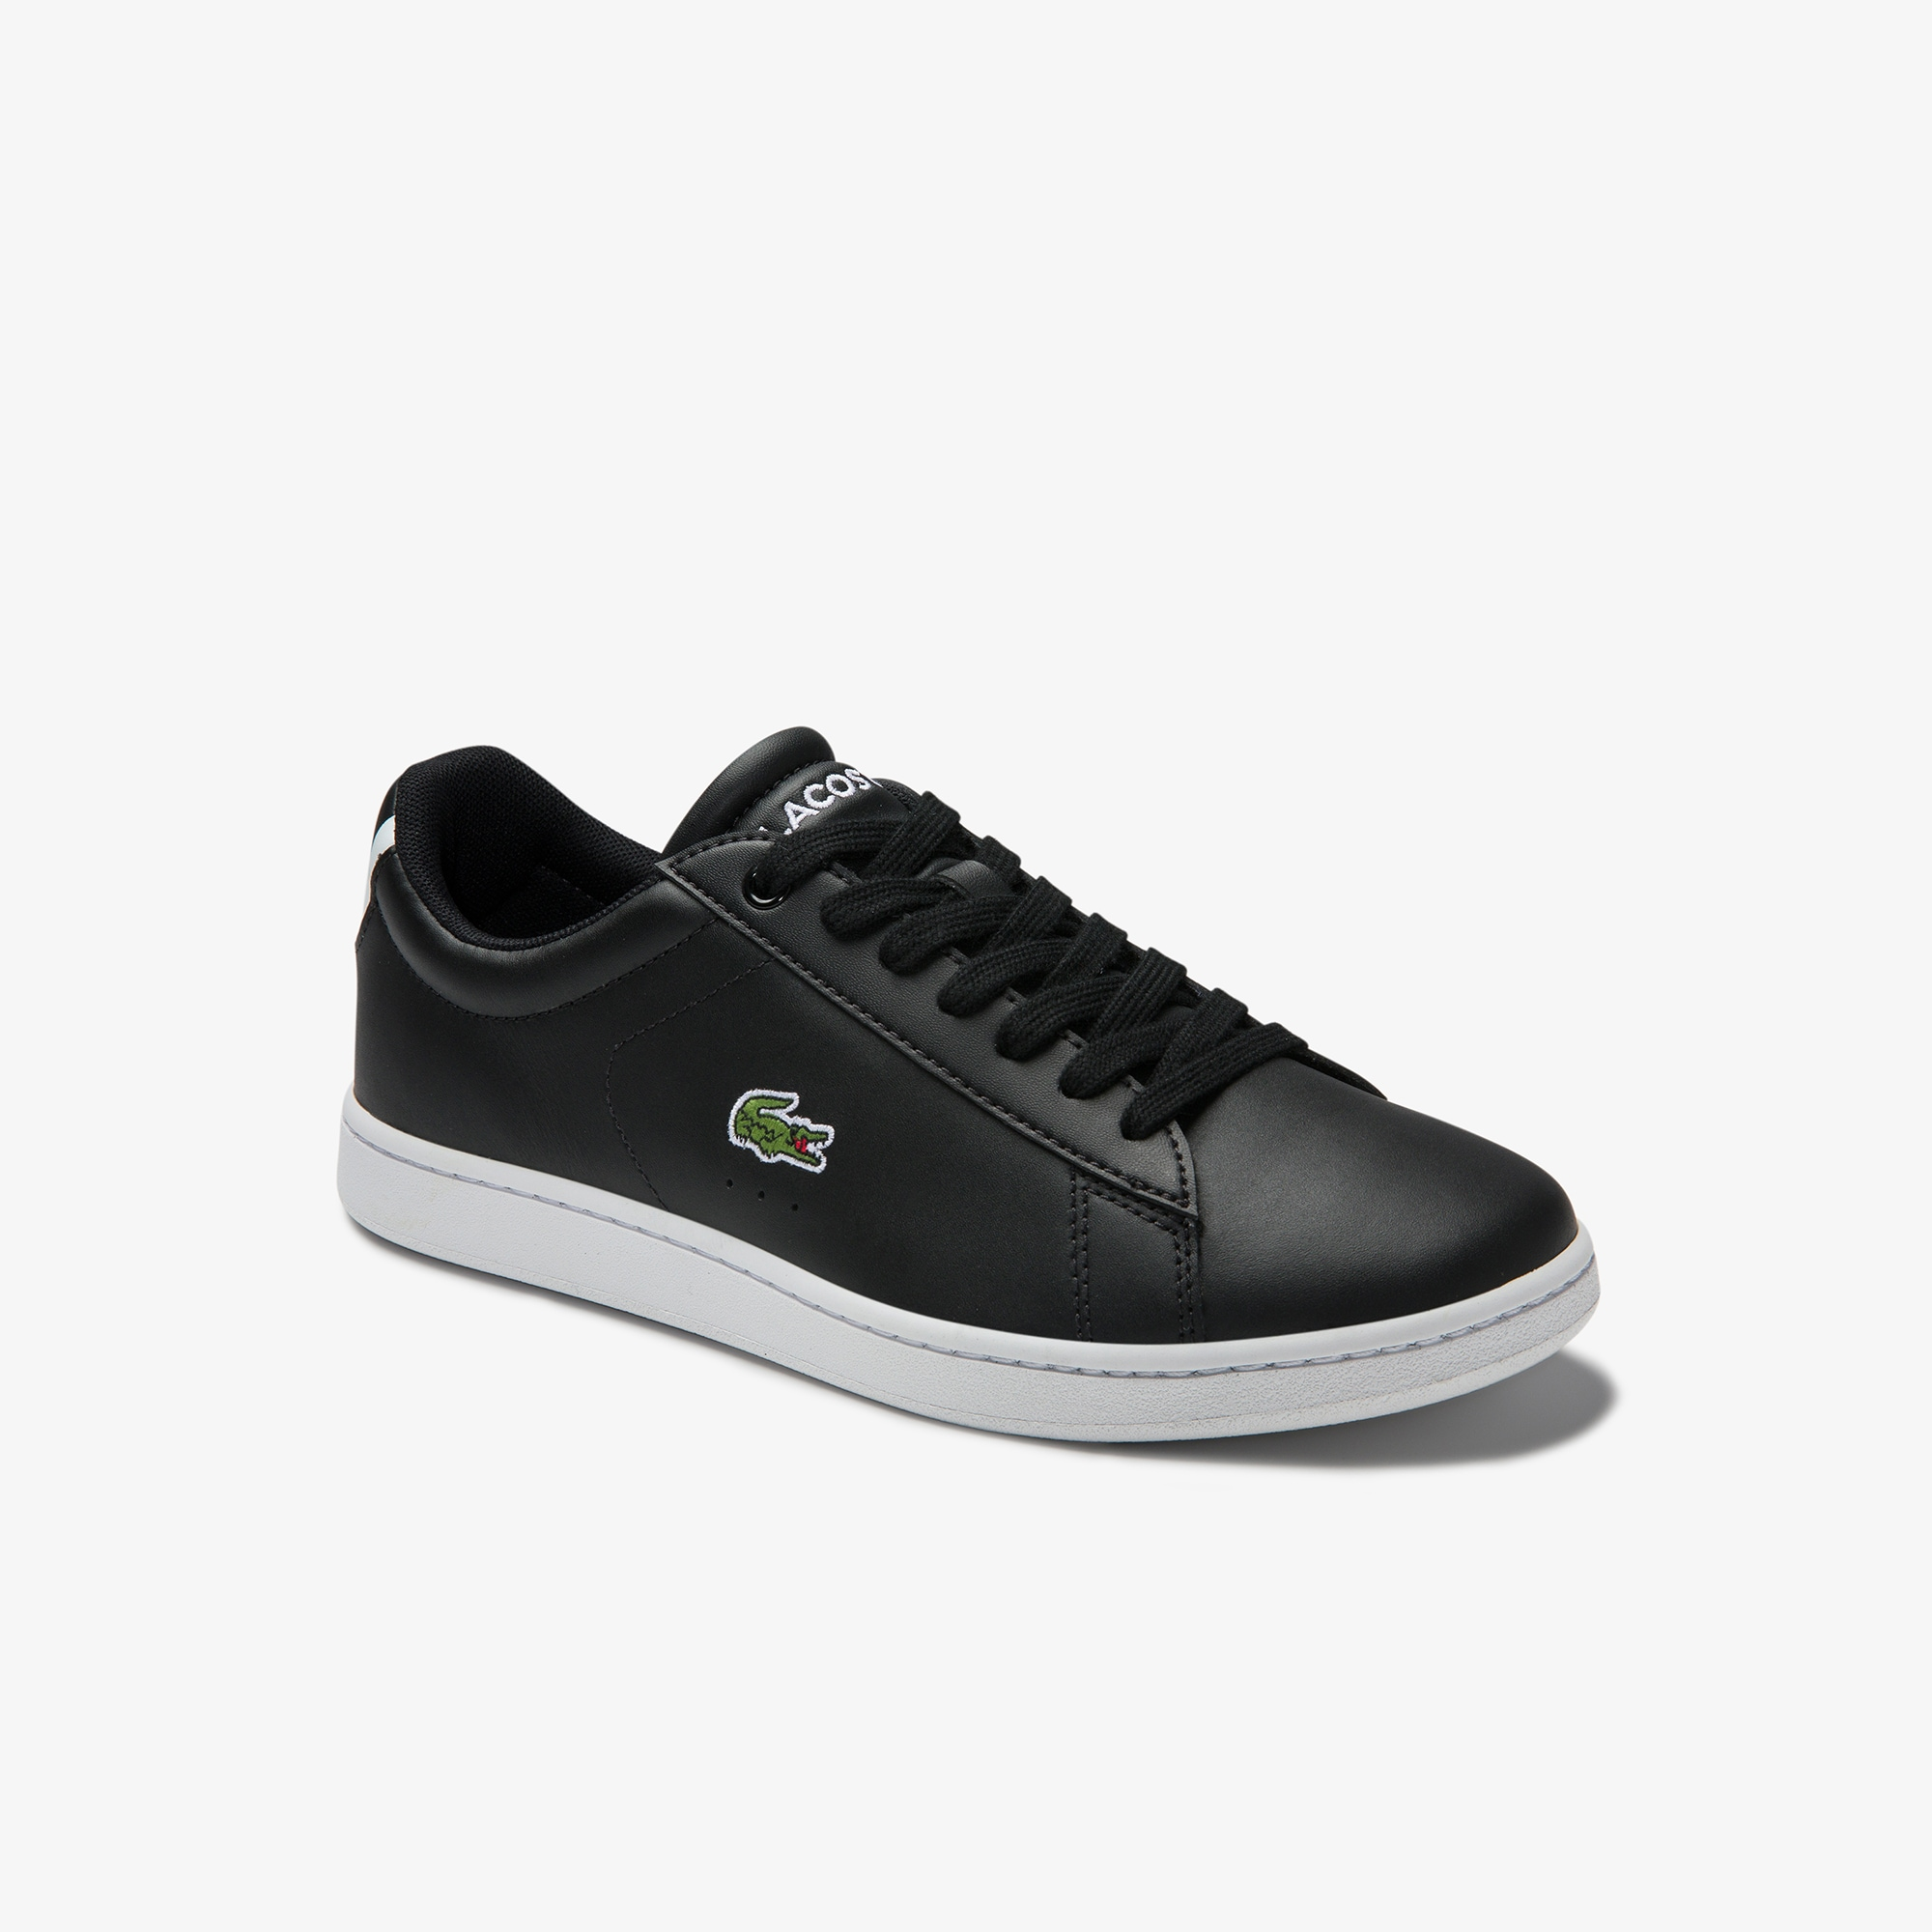 Women's Carnaby Evo Mesh-lined Leather Sneakers